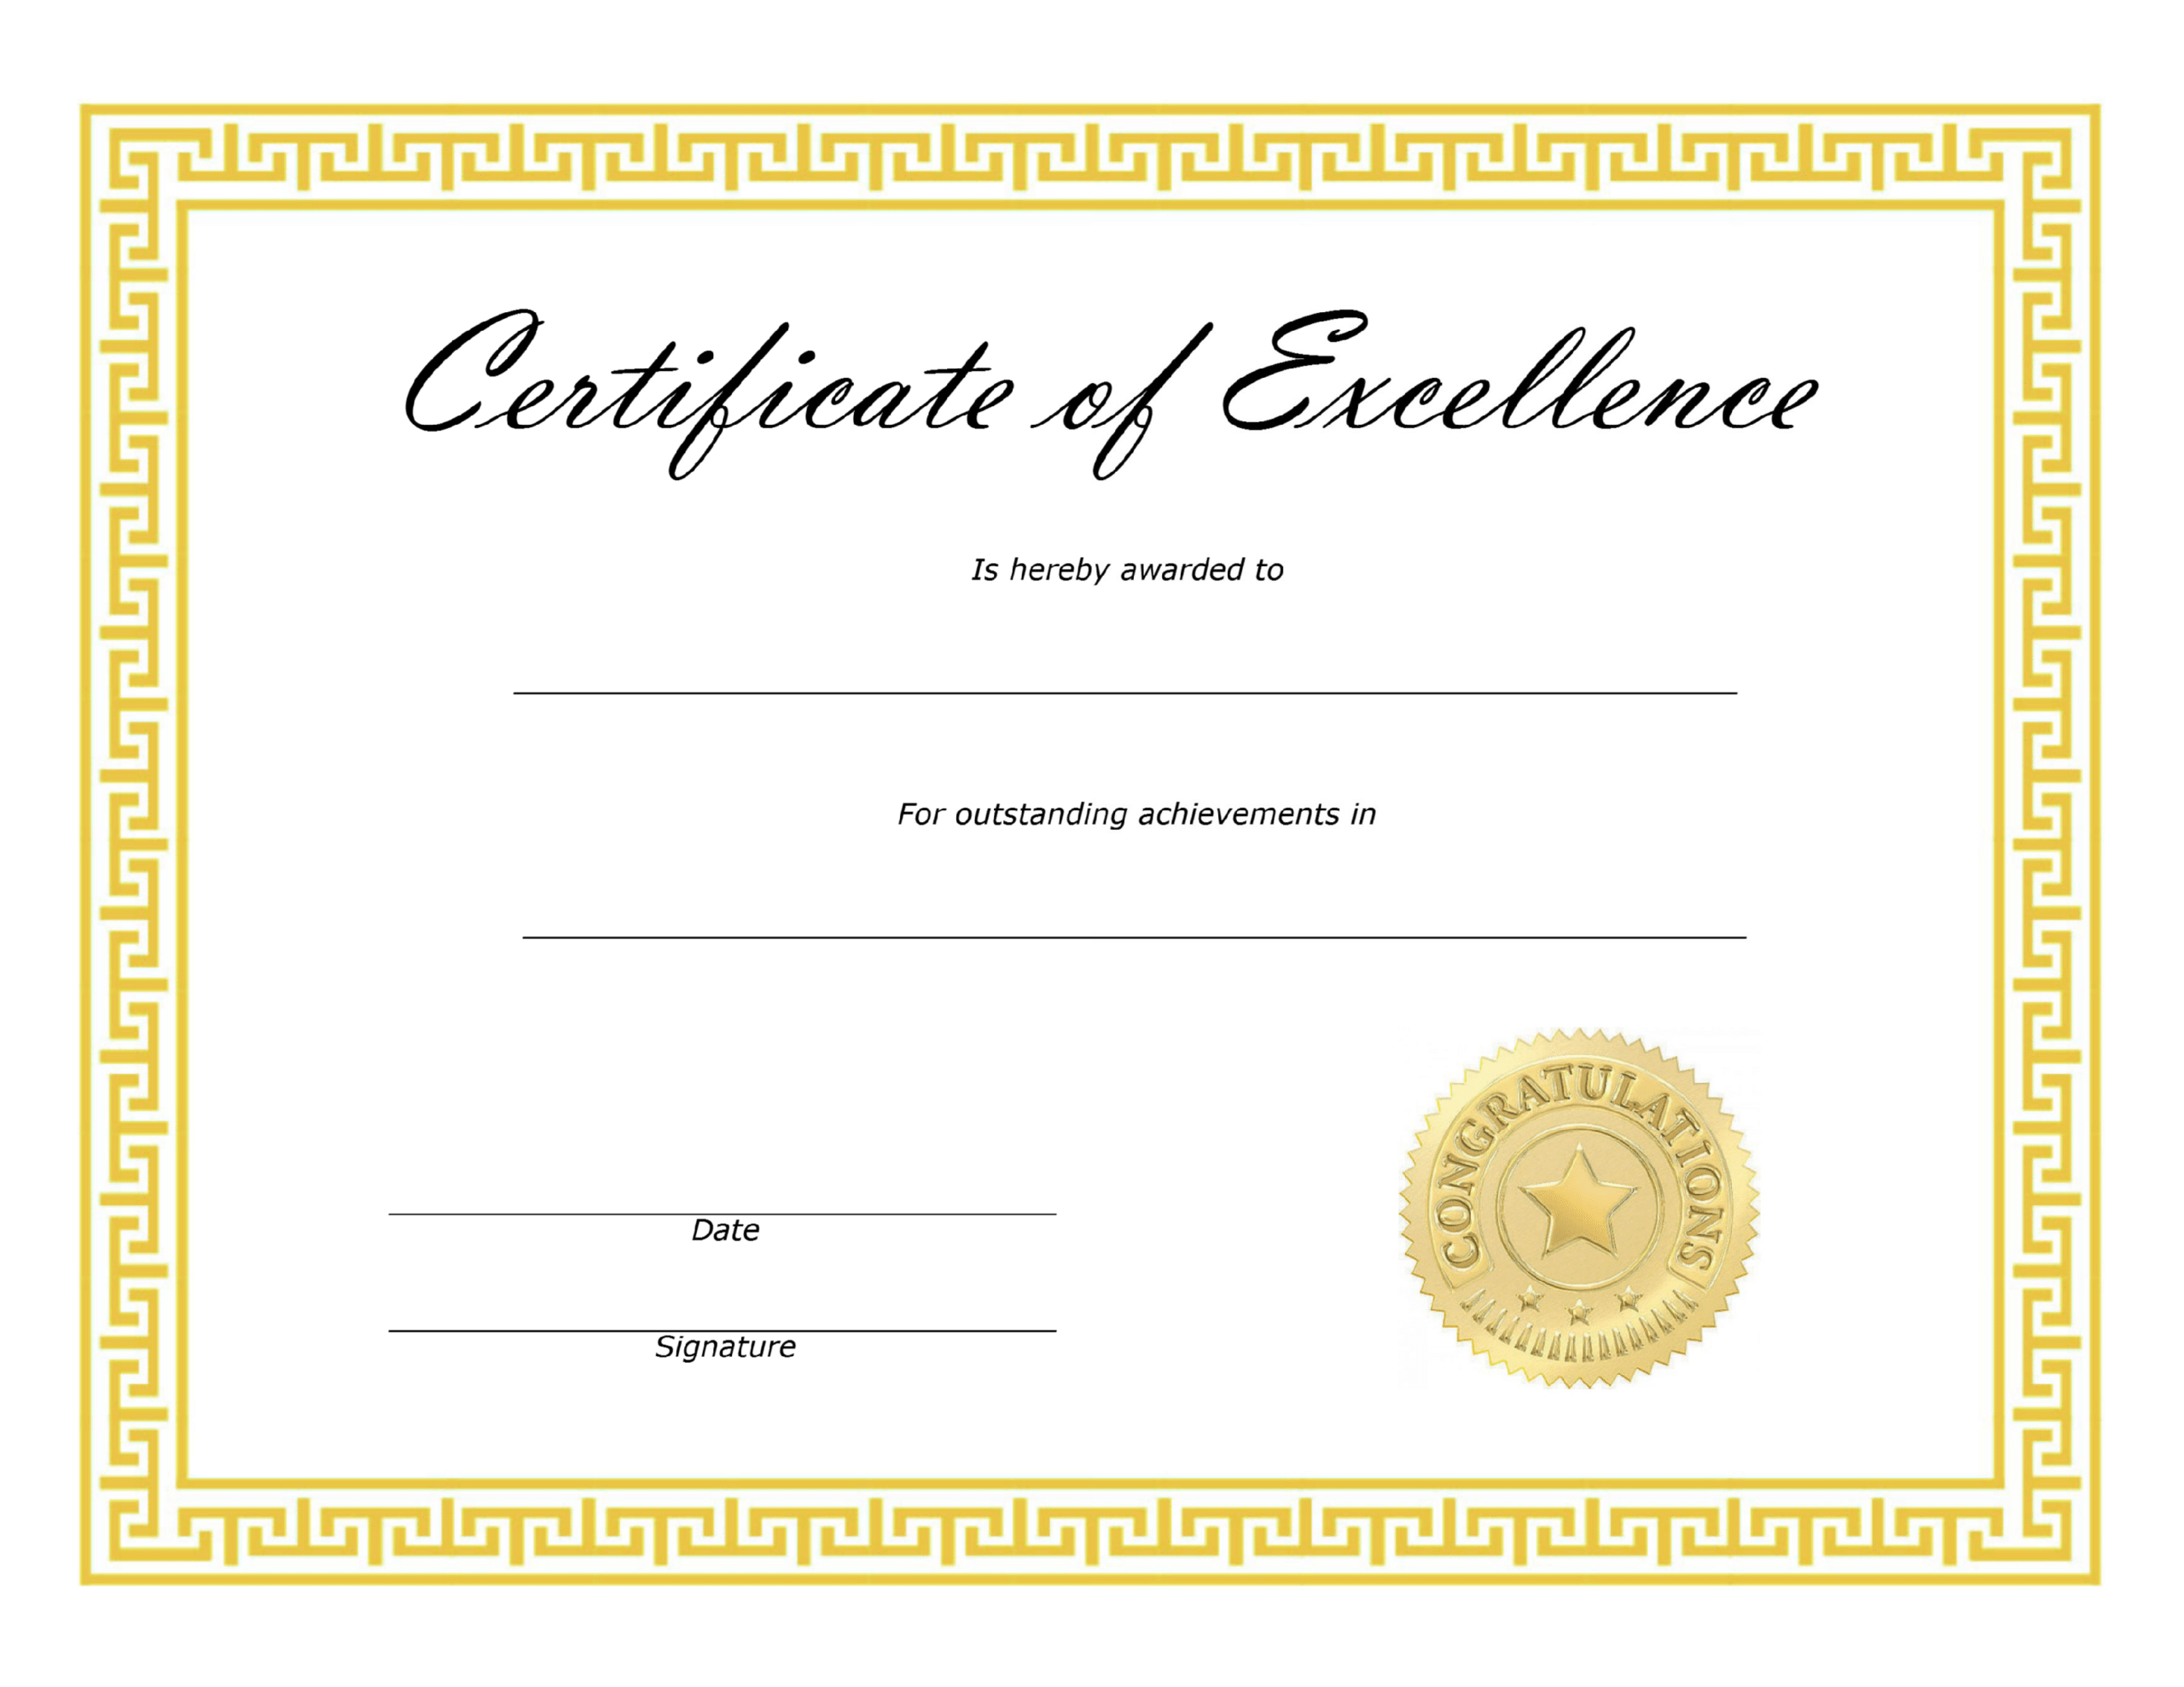 ❤️ Free Sample Certificate Of Excellence Templates❤️ In Free Certificate Of Excellence Template